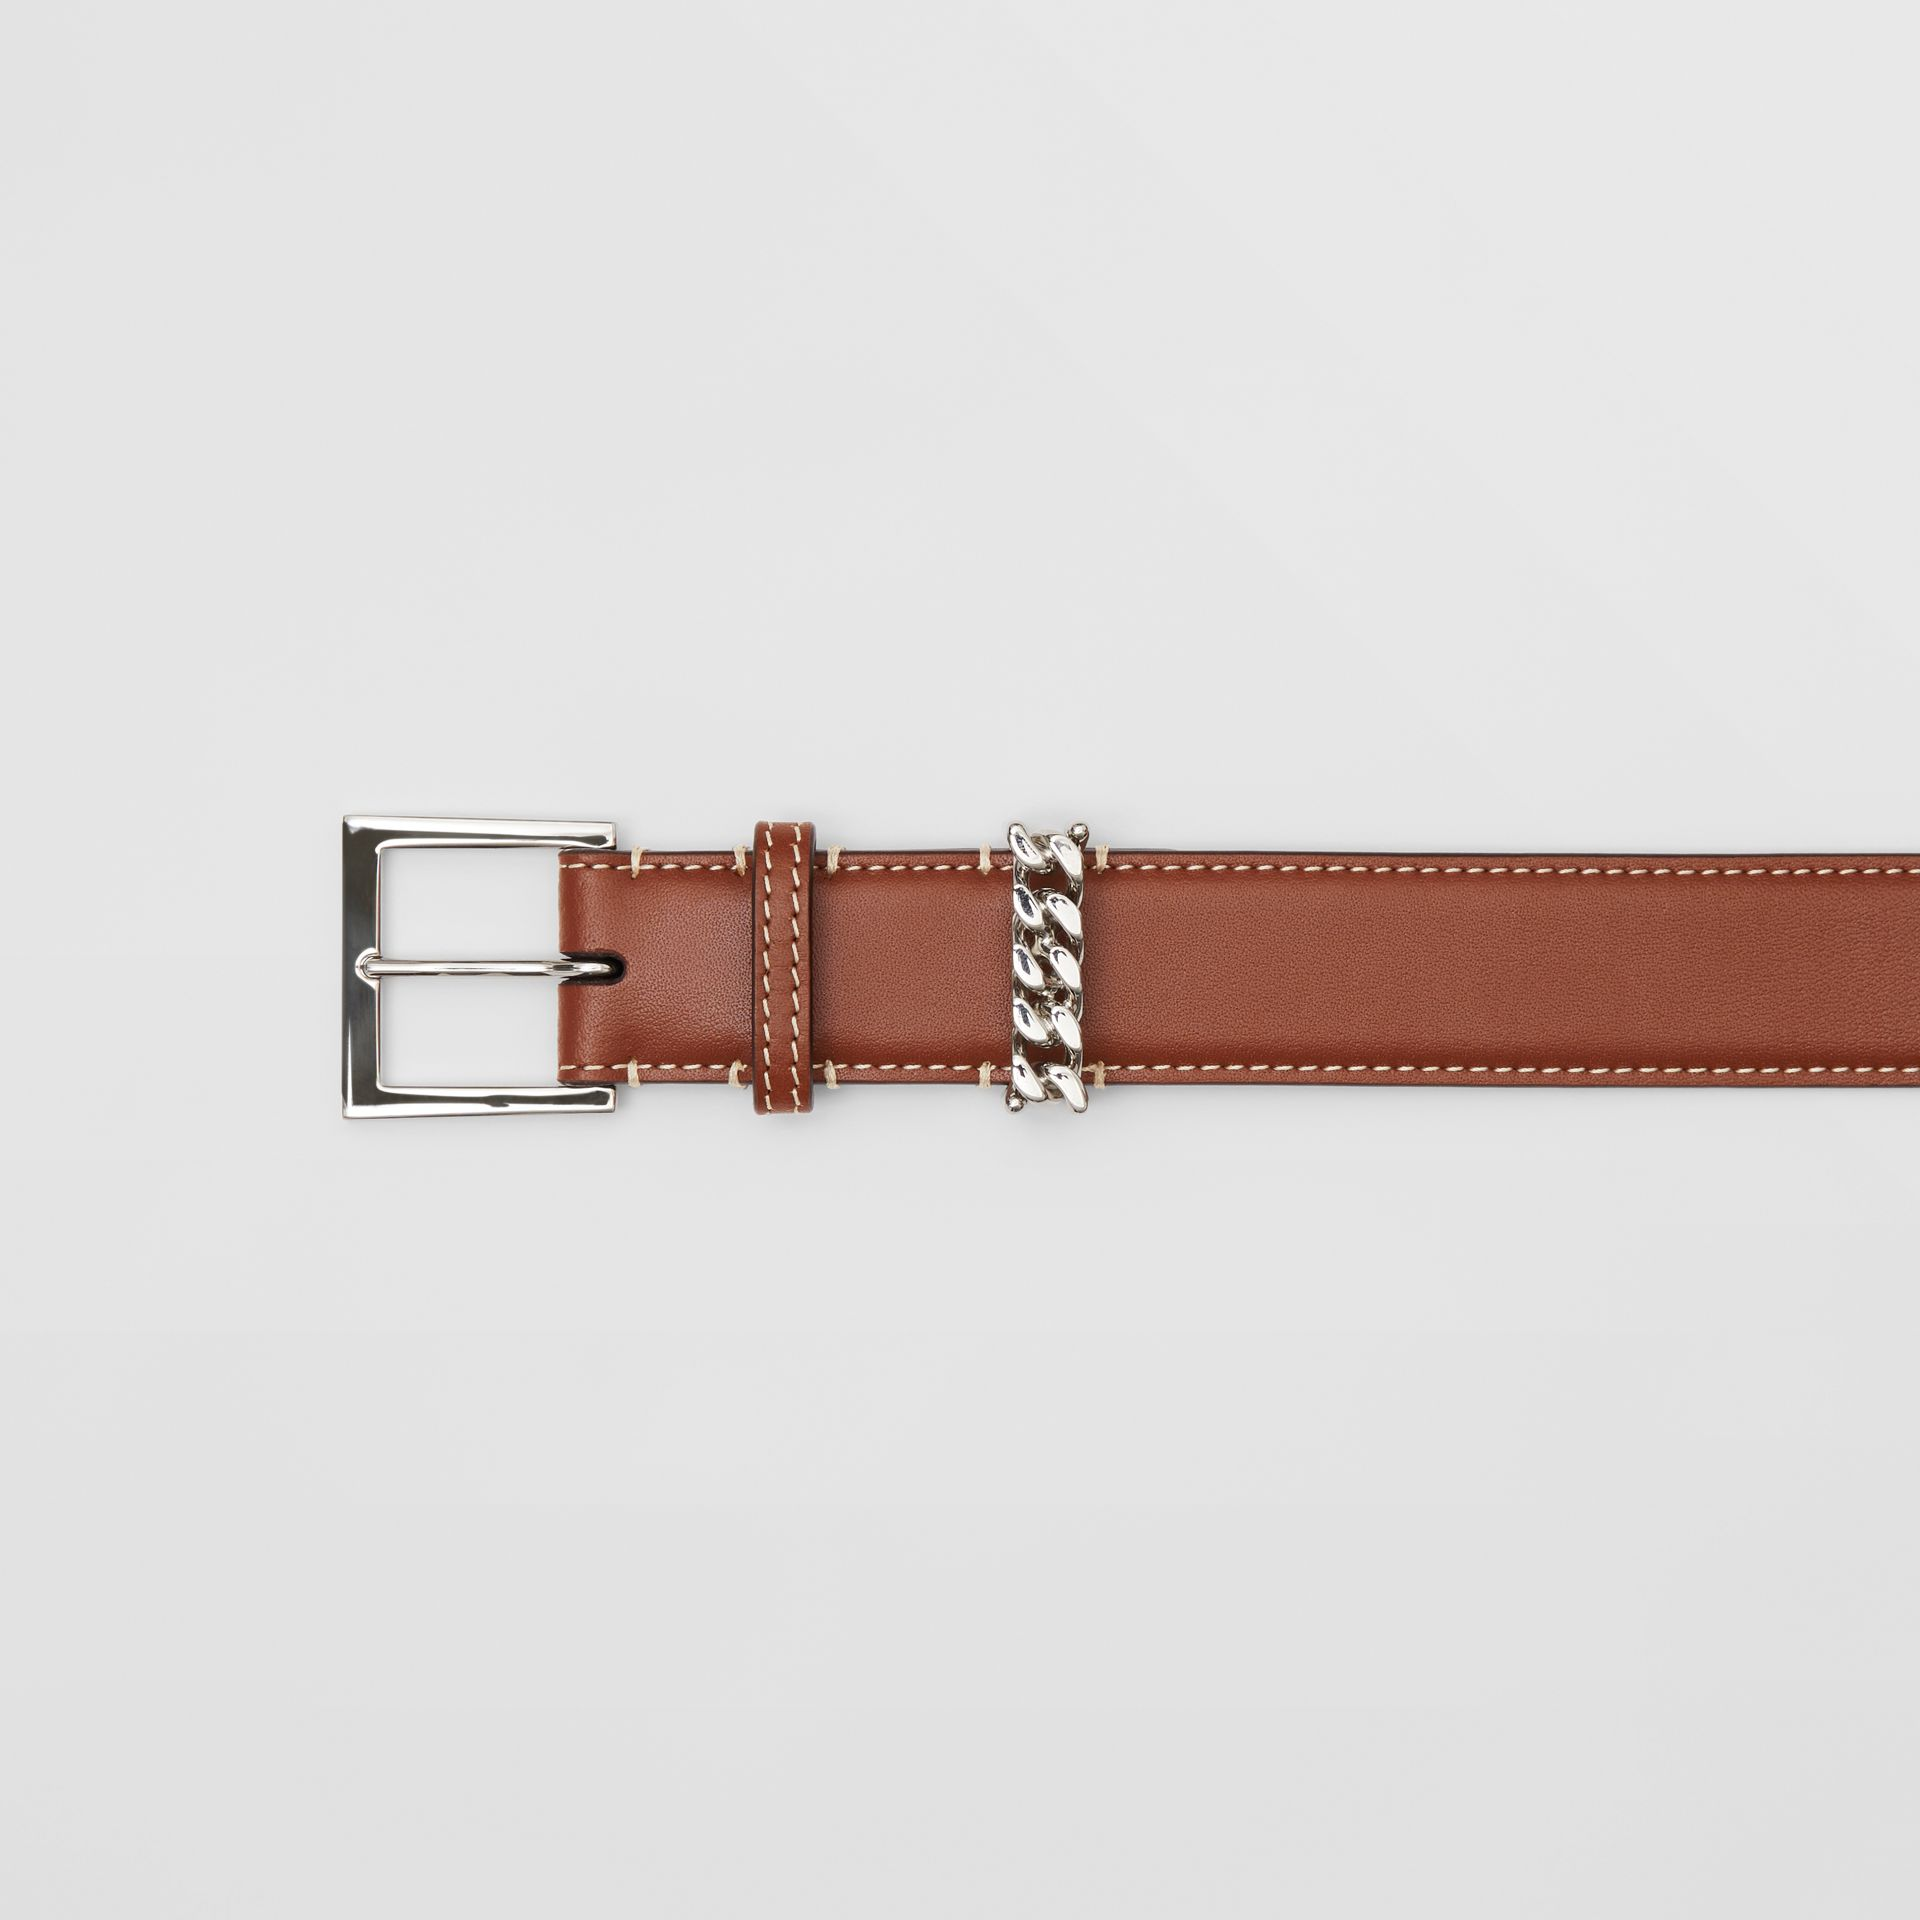 Chain Detail Topstitched Leather Belt in Tan/ecru - Women | Burberry - gallery image 1